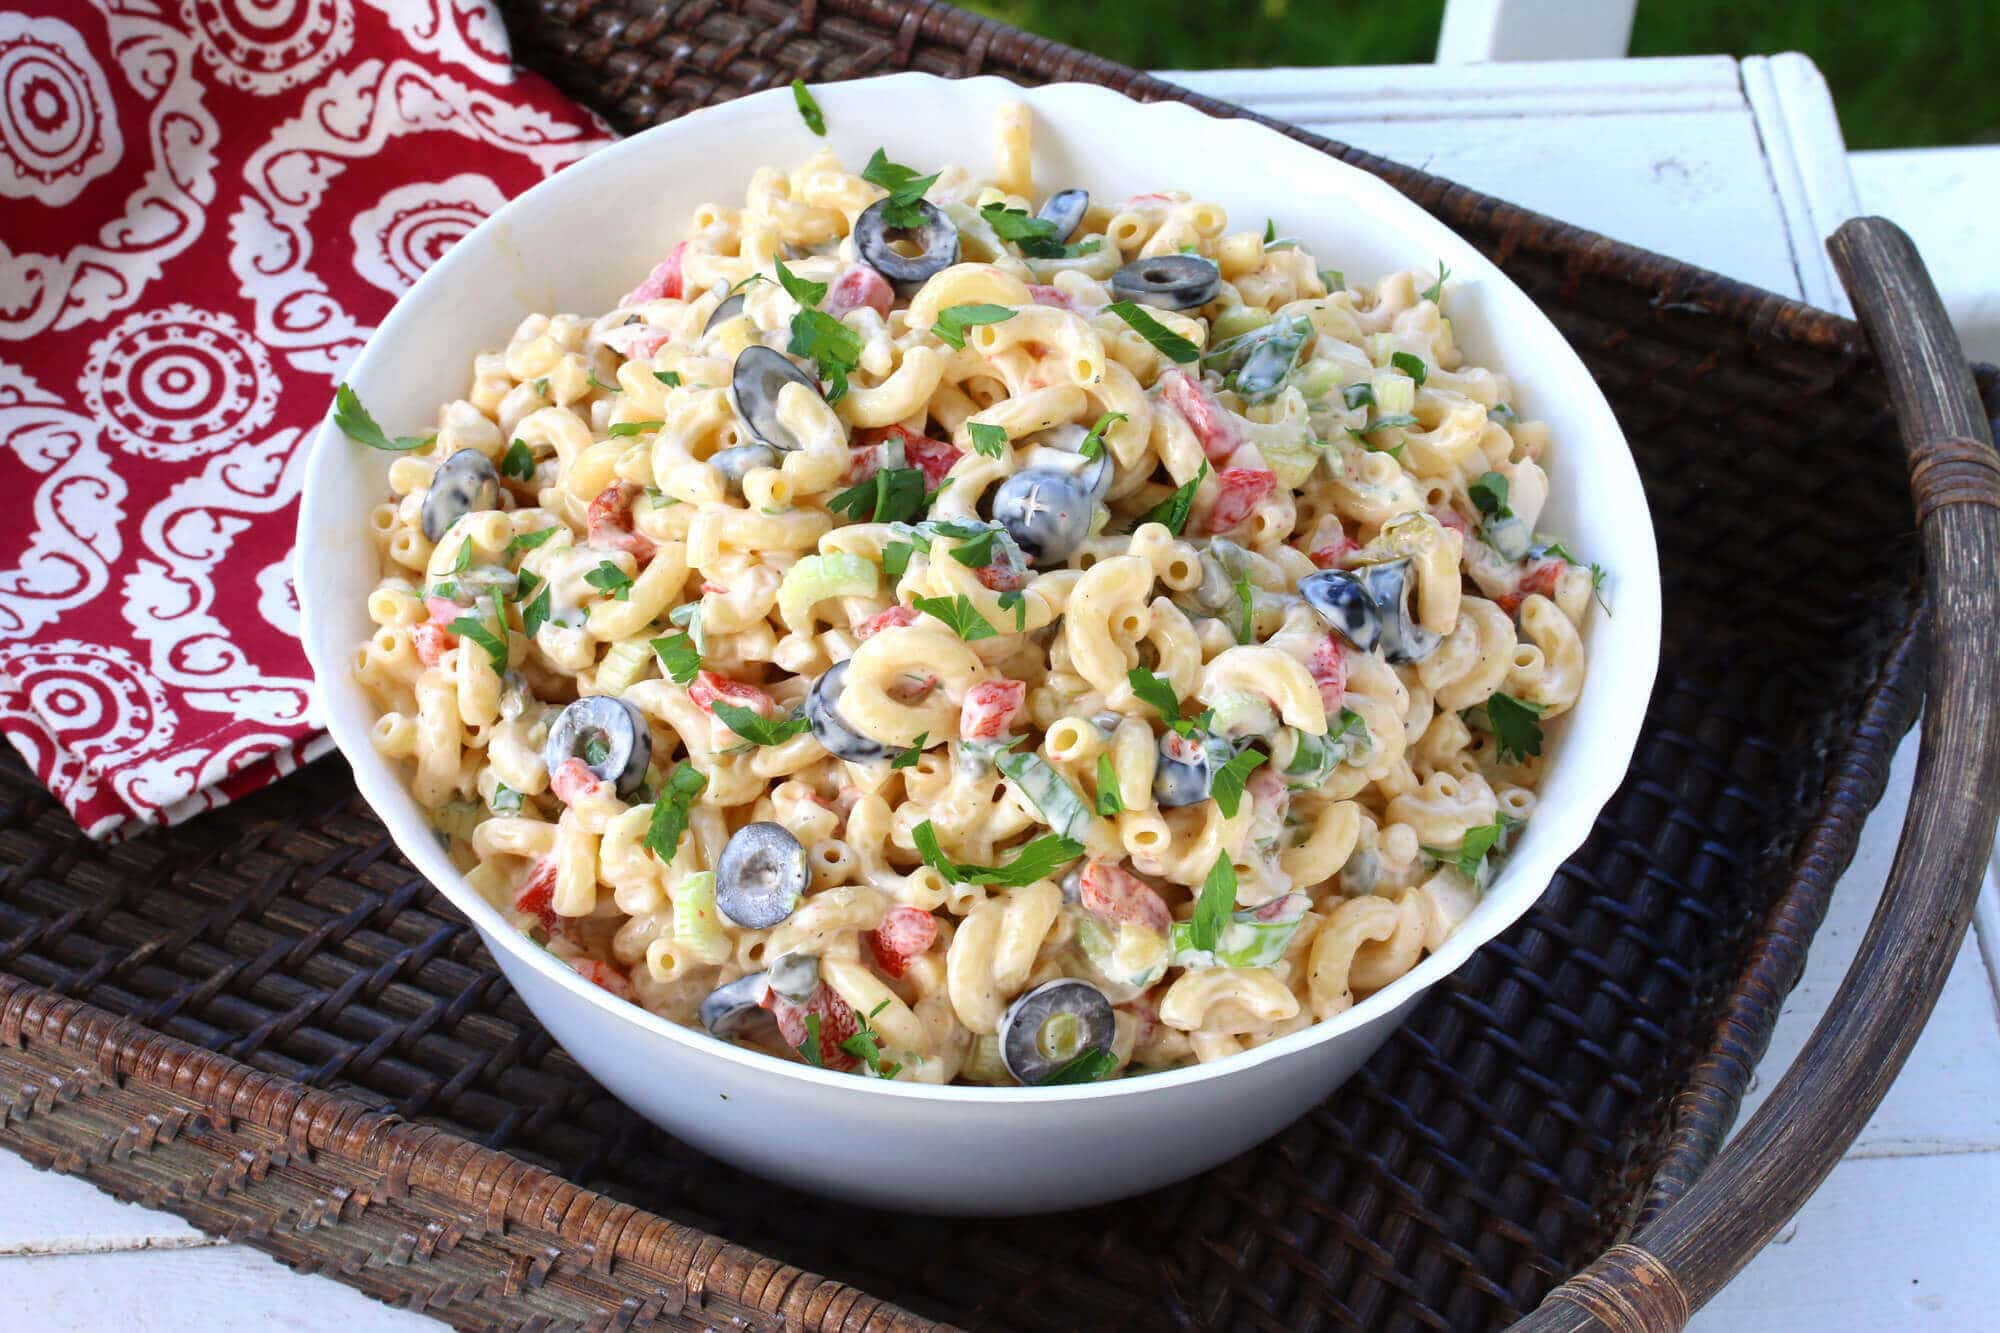 best macaroni salad recipe peppers olives capers mayonnaise moist flavorful celery onions